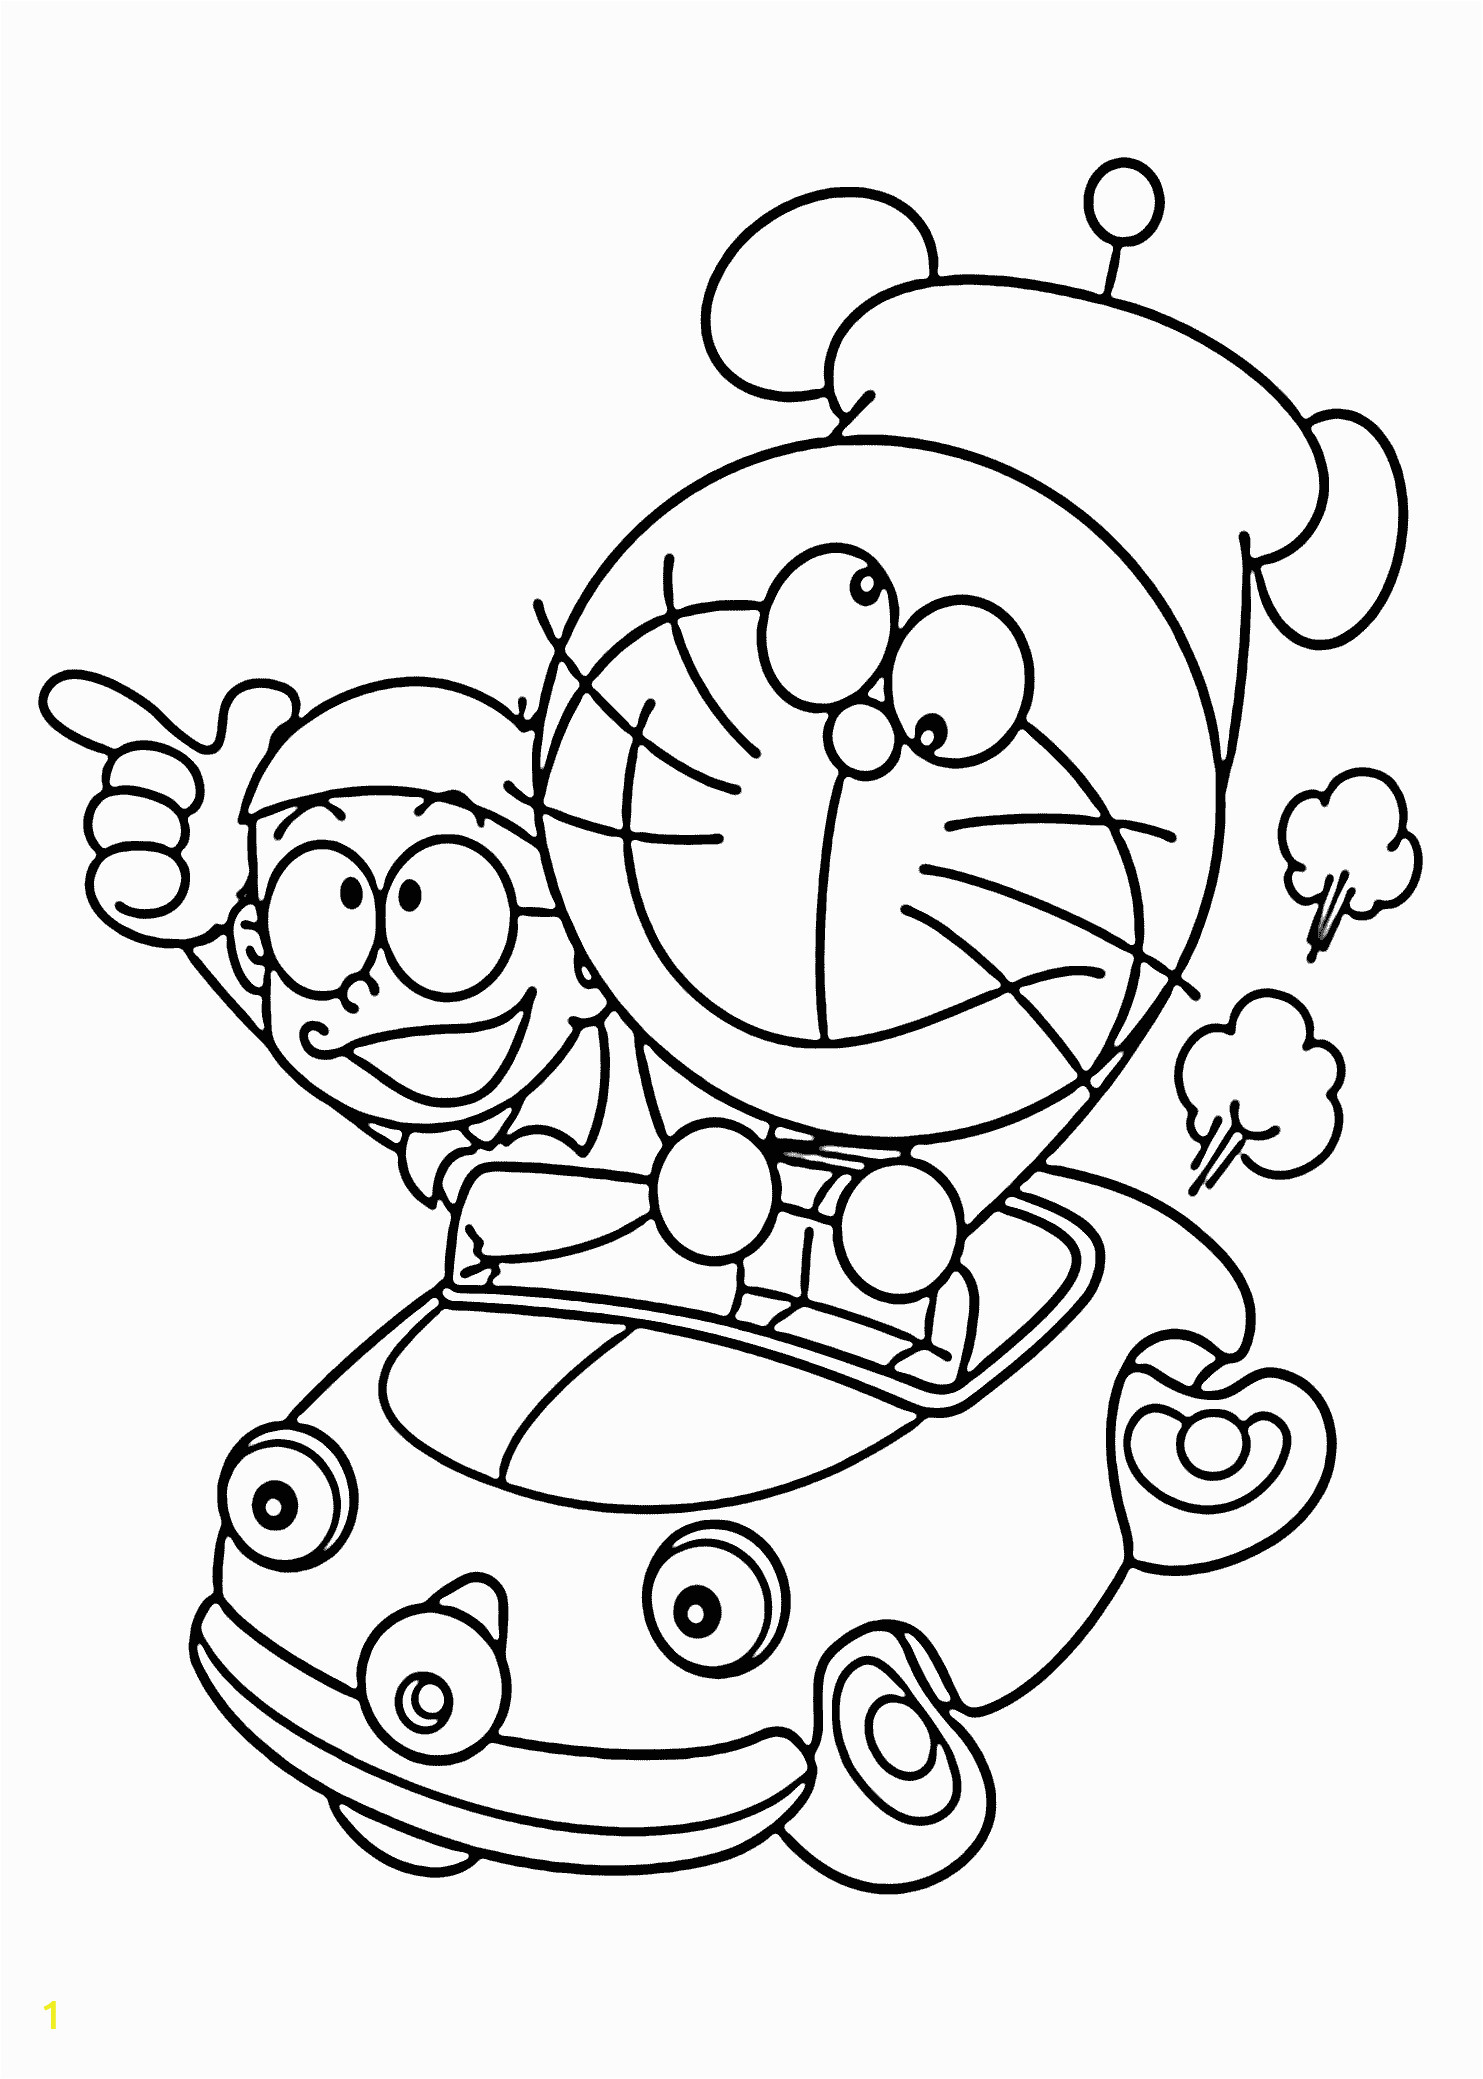 Coloring Kitty and Painting Doraemon for toddlers Doraemon In Car Coloring Pages for Kids Printable Free